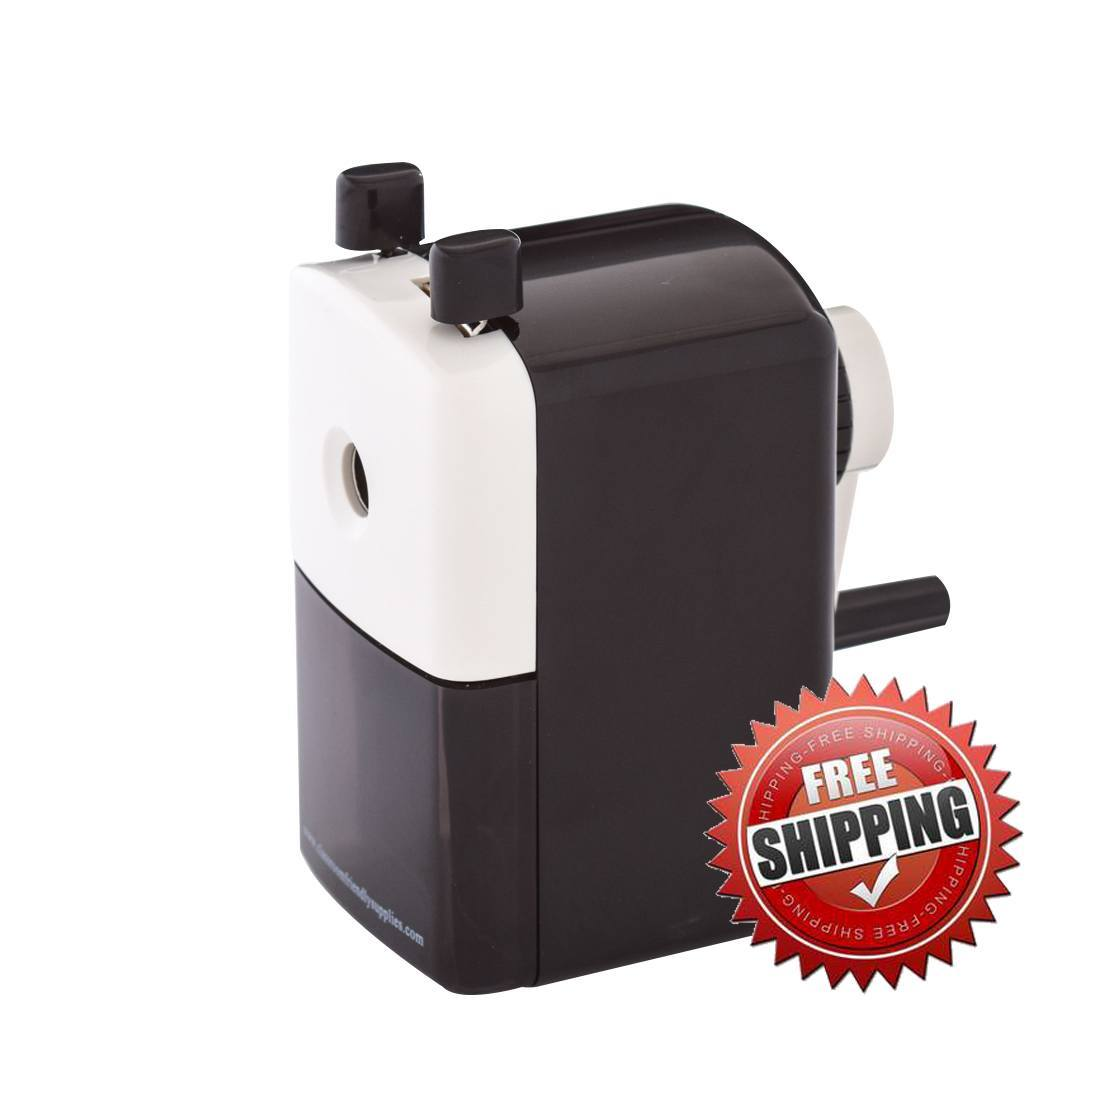 Large Hole Sharpener - Classroom Friendly Supplies  - 1